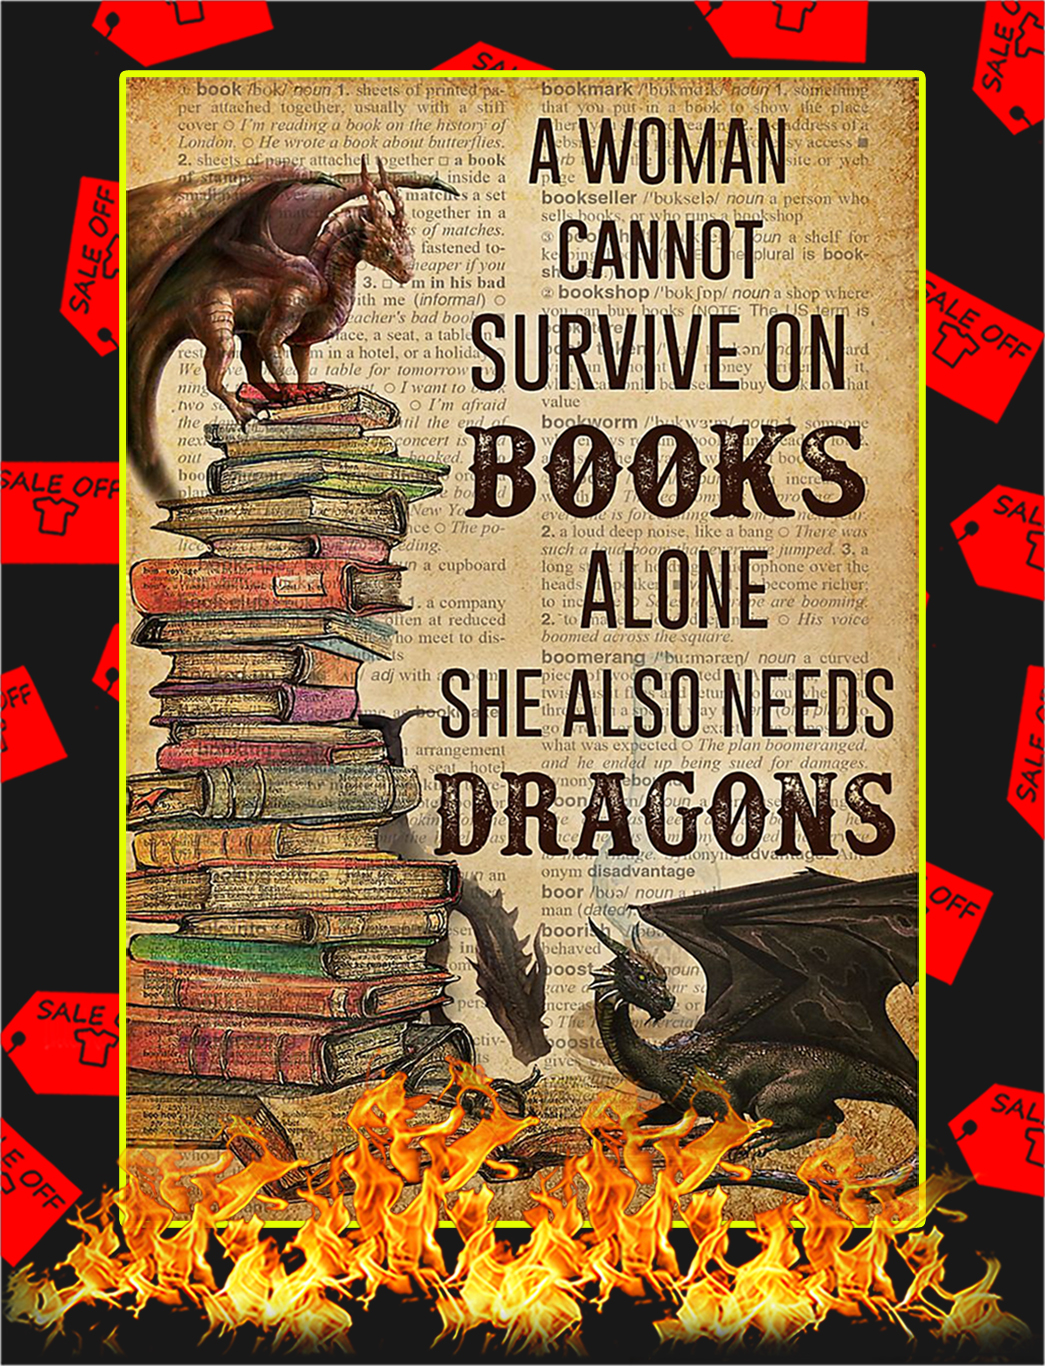 A woman cannot survive on books alone needs dragons poster - A1